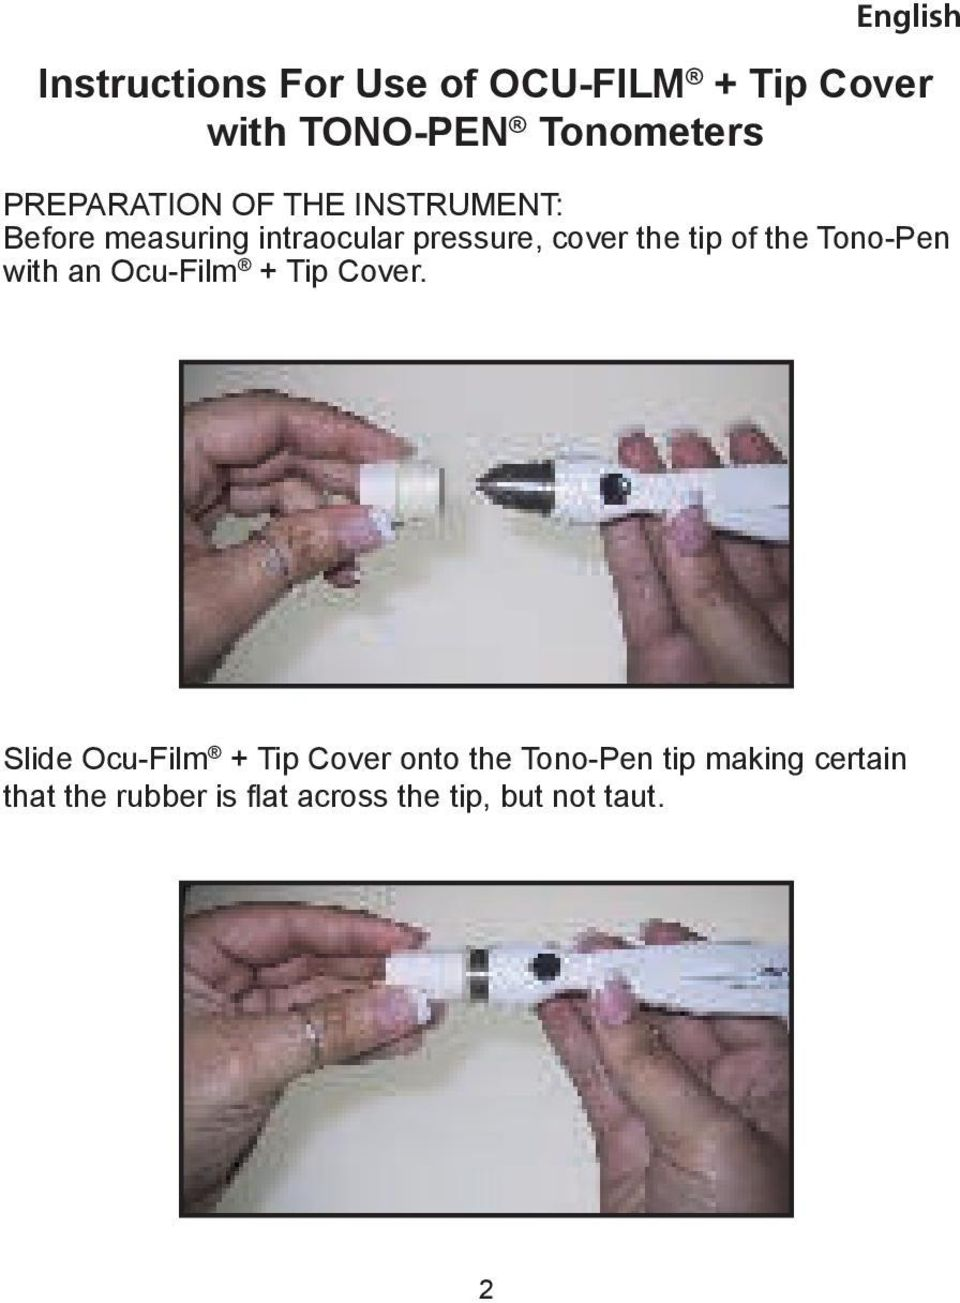 tip of the Tono-Pen with an Ocu-Film + Tip Cover.